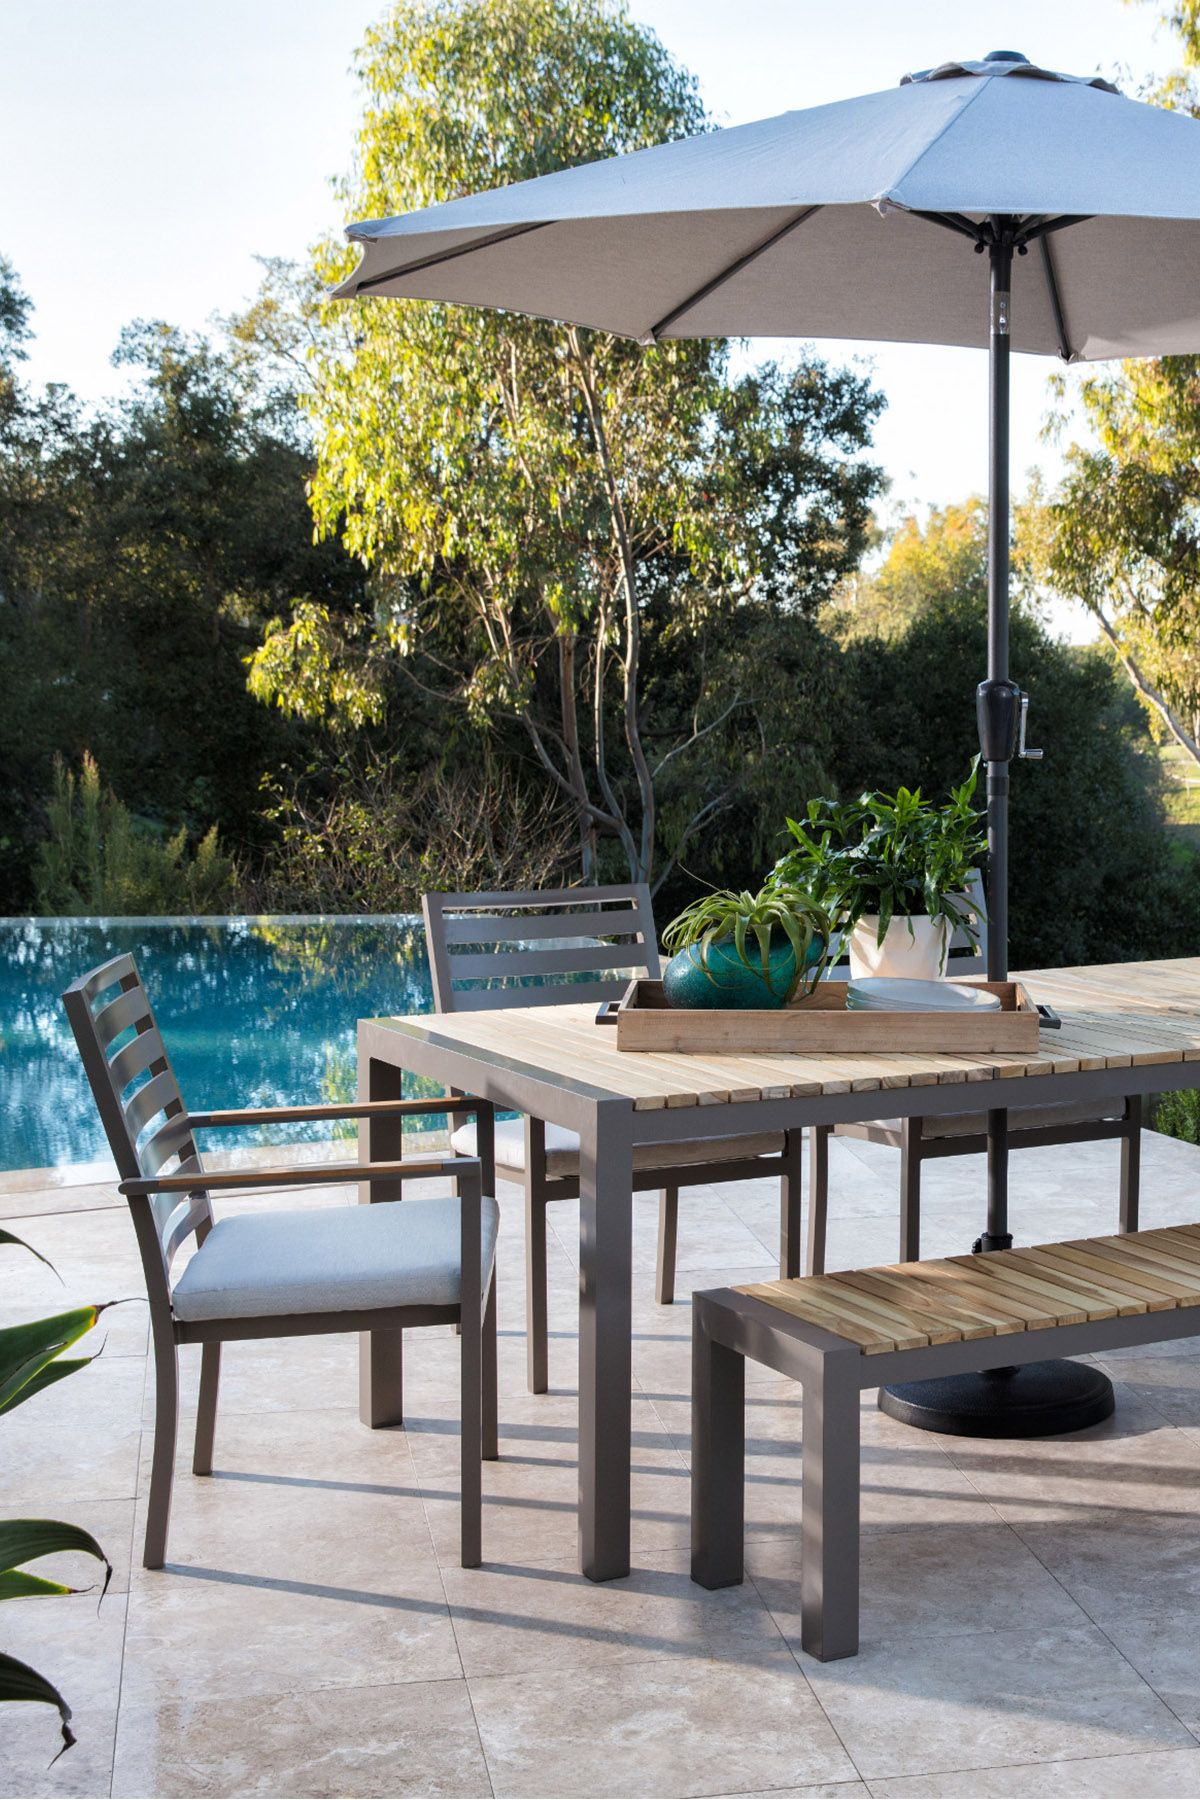 Outdoor Brasilia Teak Dining Table With 4 Chairs And 1 Bench In 2018 within Outdoor Koro Swivel Chairs